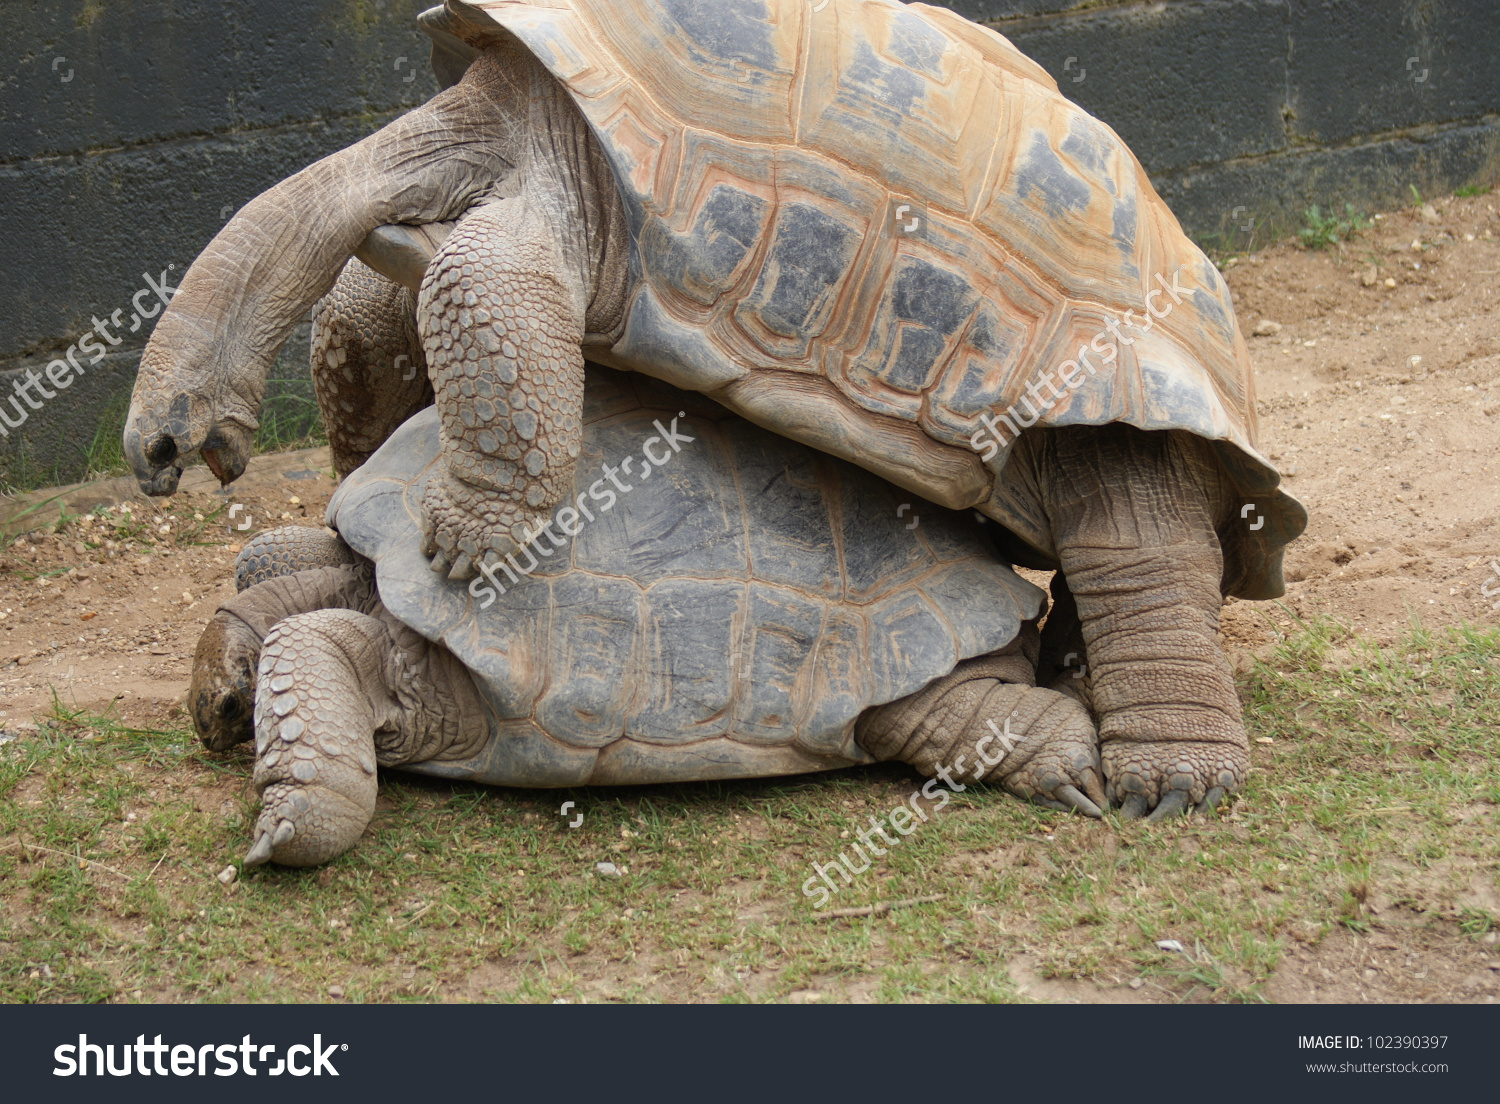 Aldabra Giant Tortoise clipart #6, Download drawings